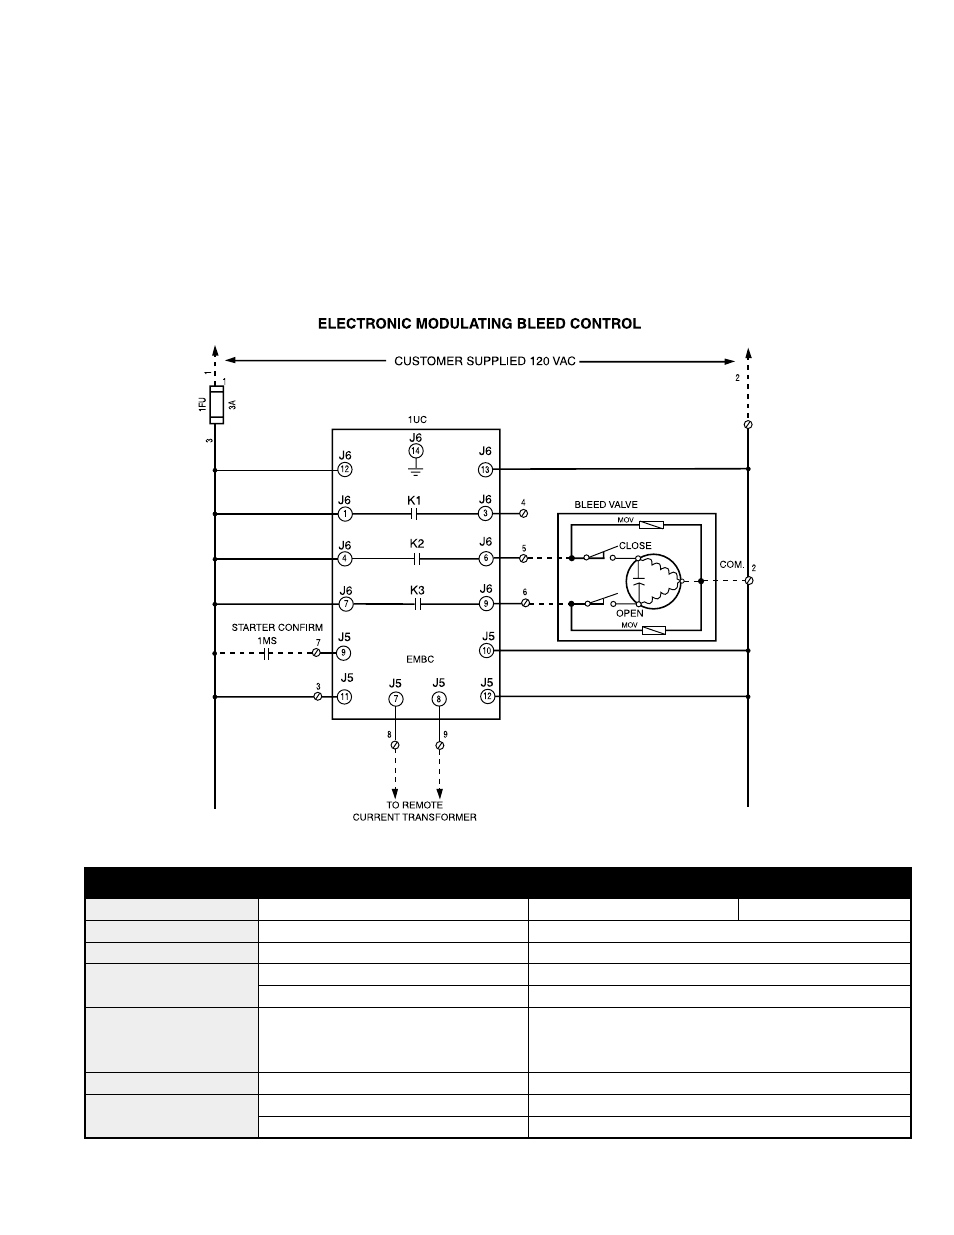 Iv  Manual Override  V  Wiring Diagram  Specifications